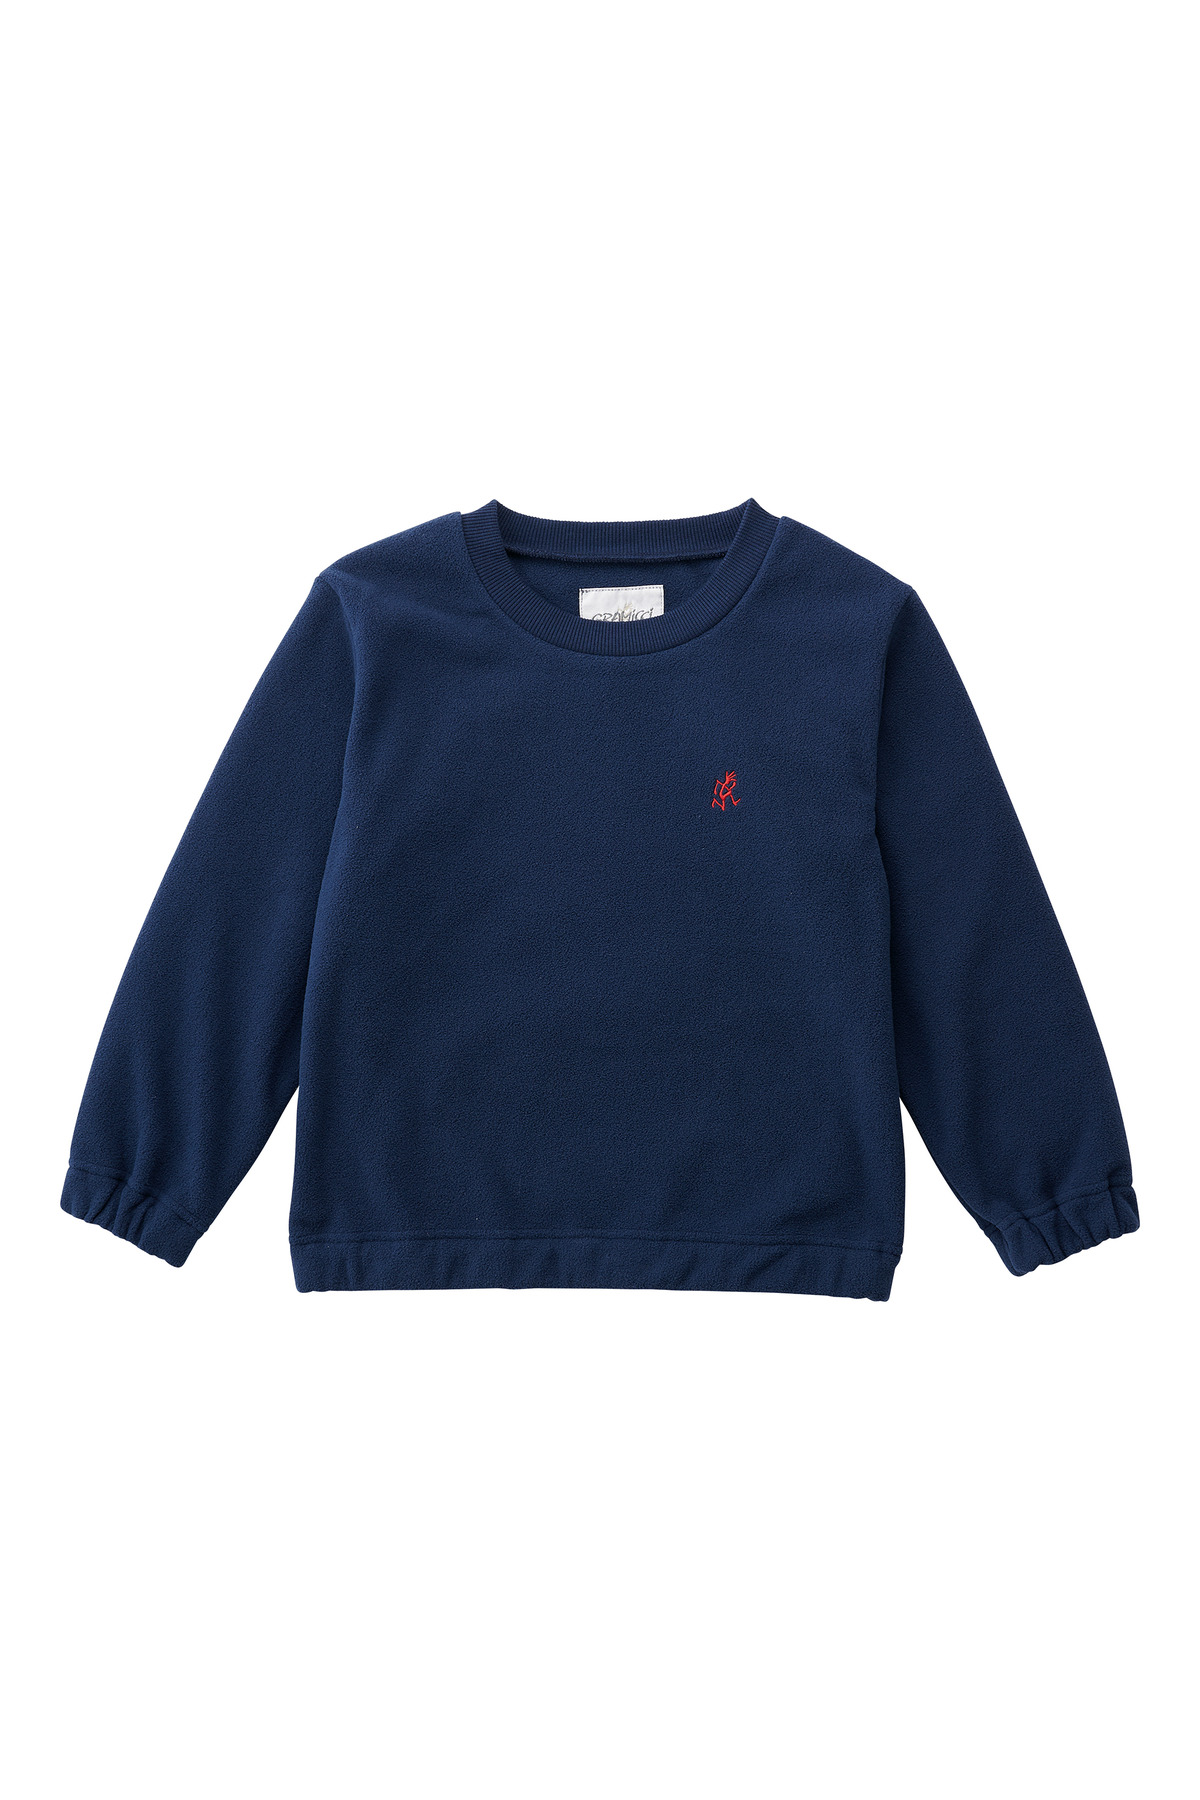 KIDS FLEECE CREW NECK NAVY